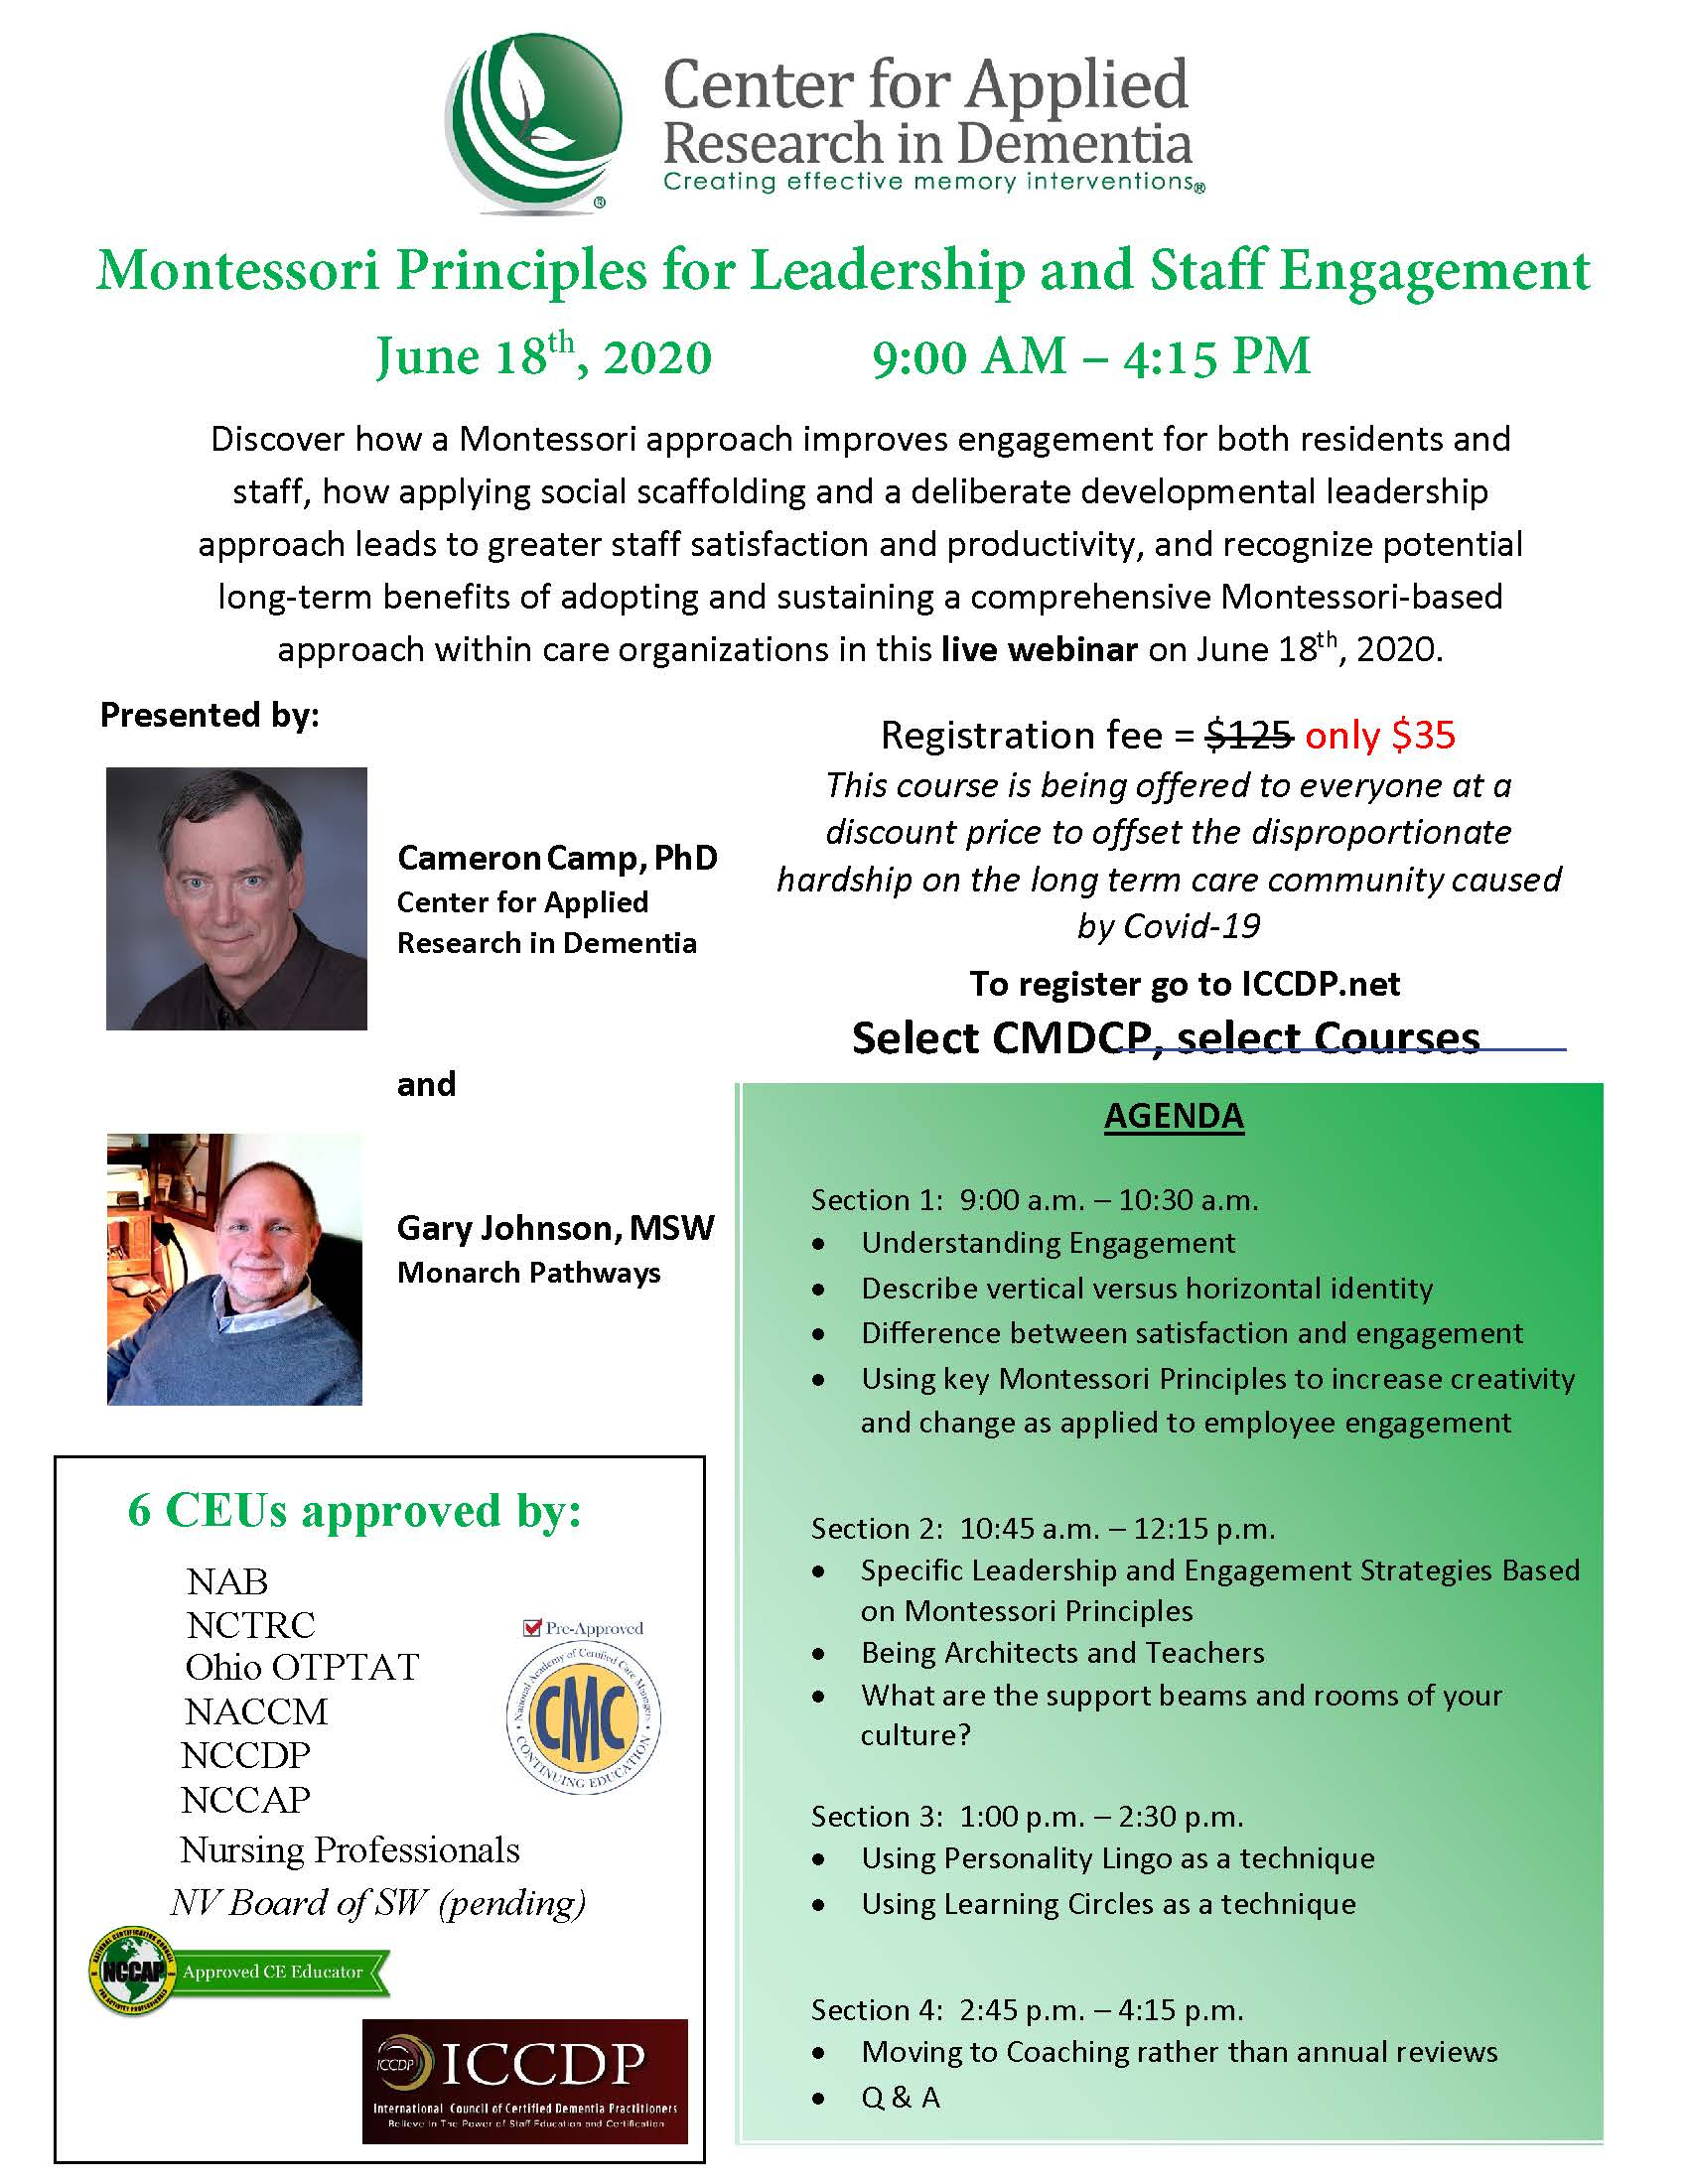 Montessori Principles for Leadership and Staff Engagement flyer.